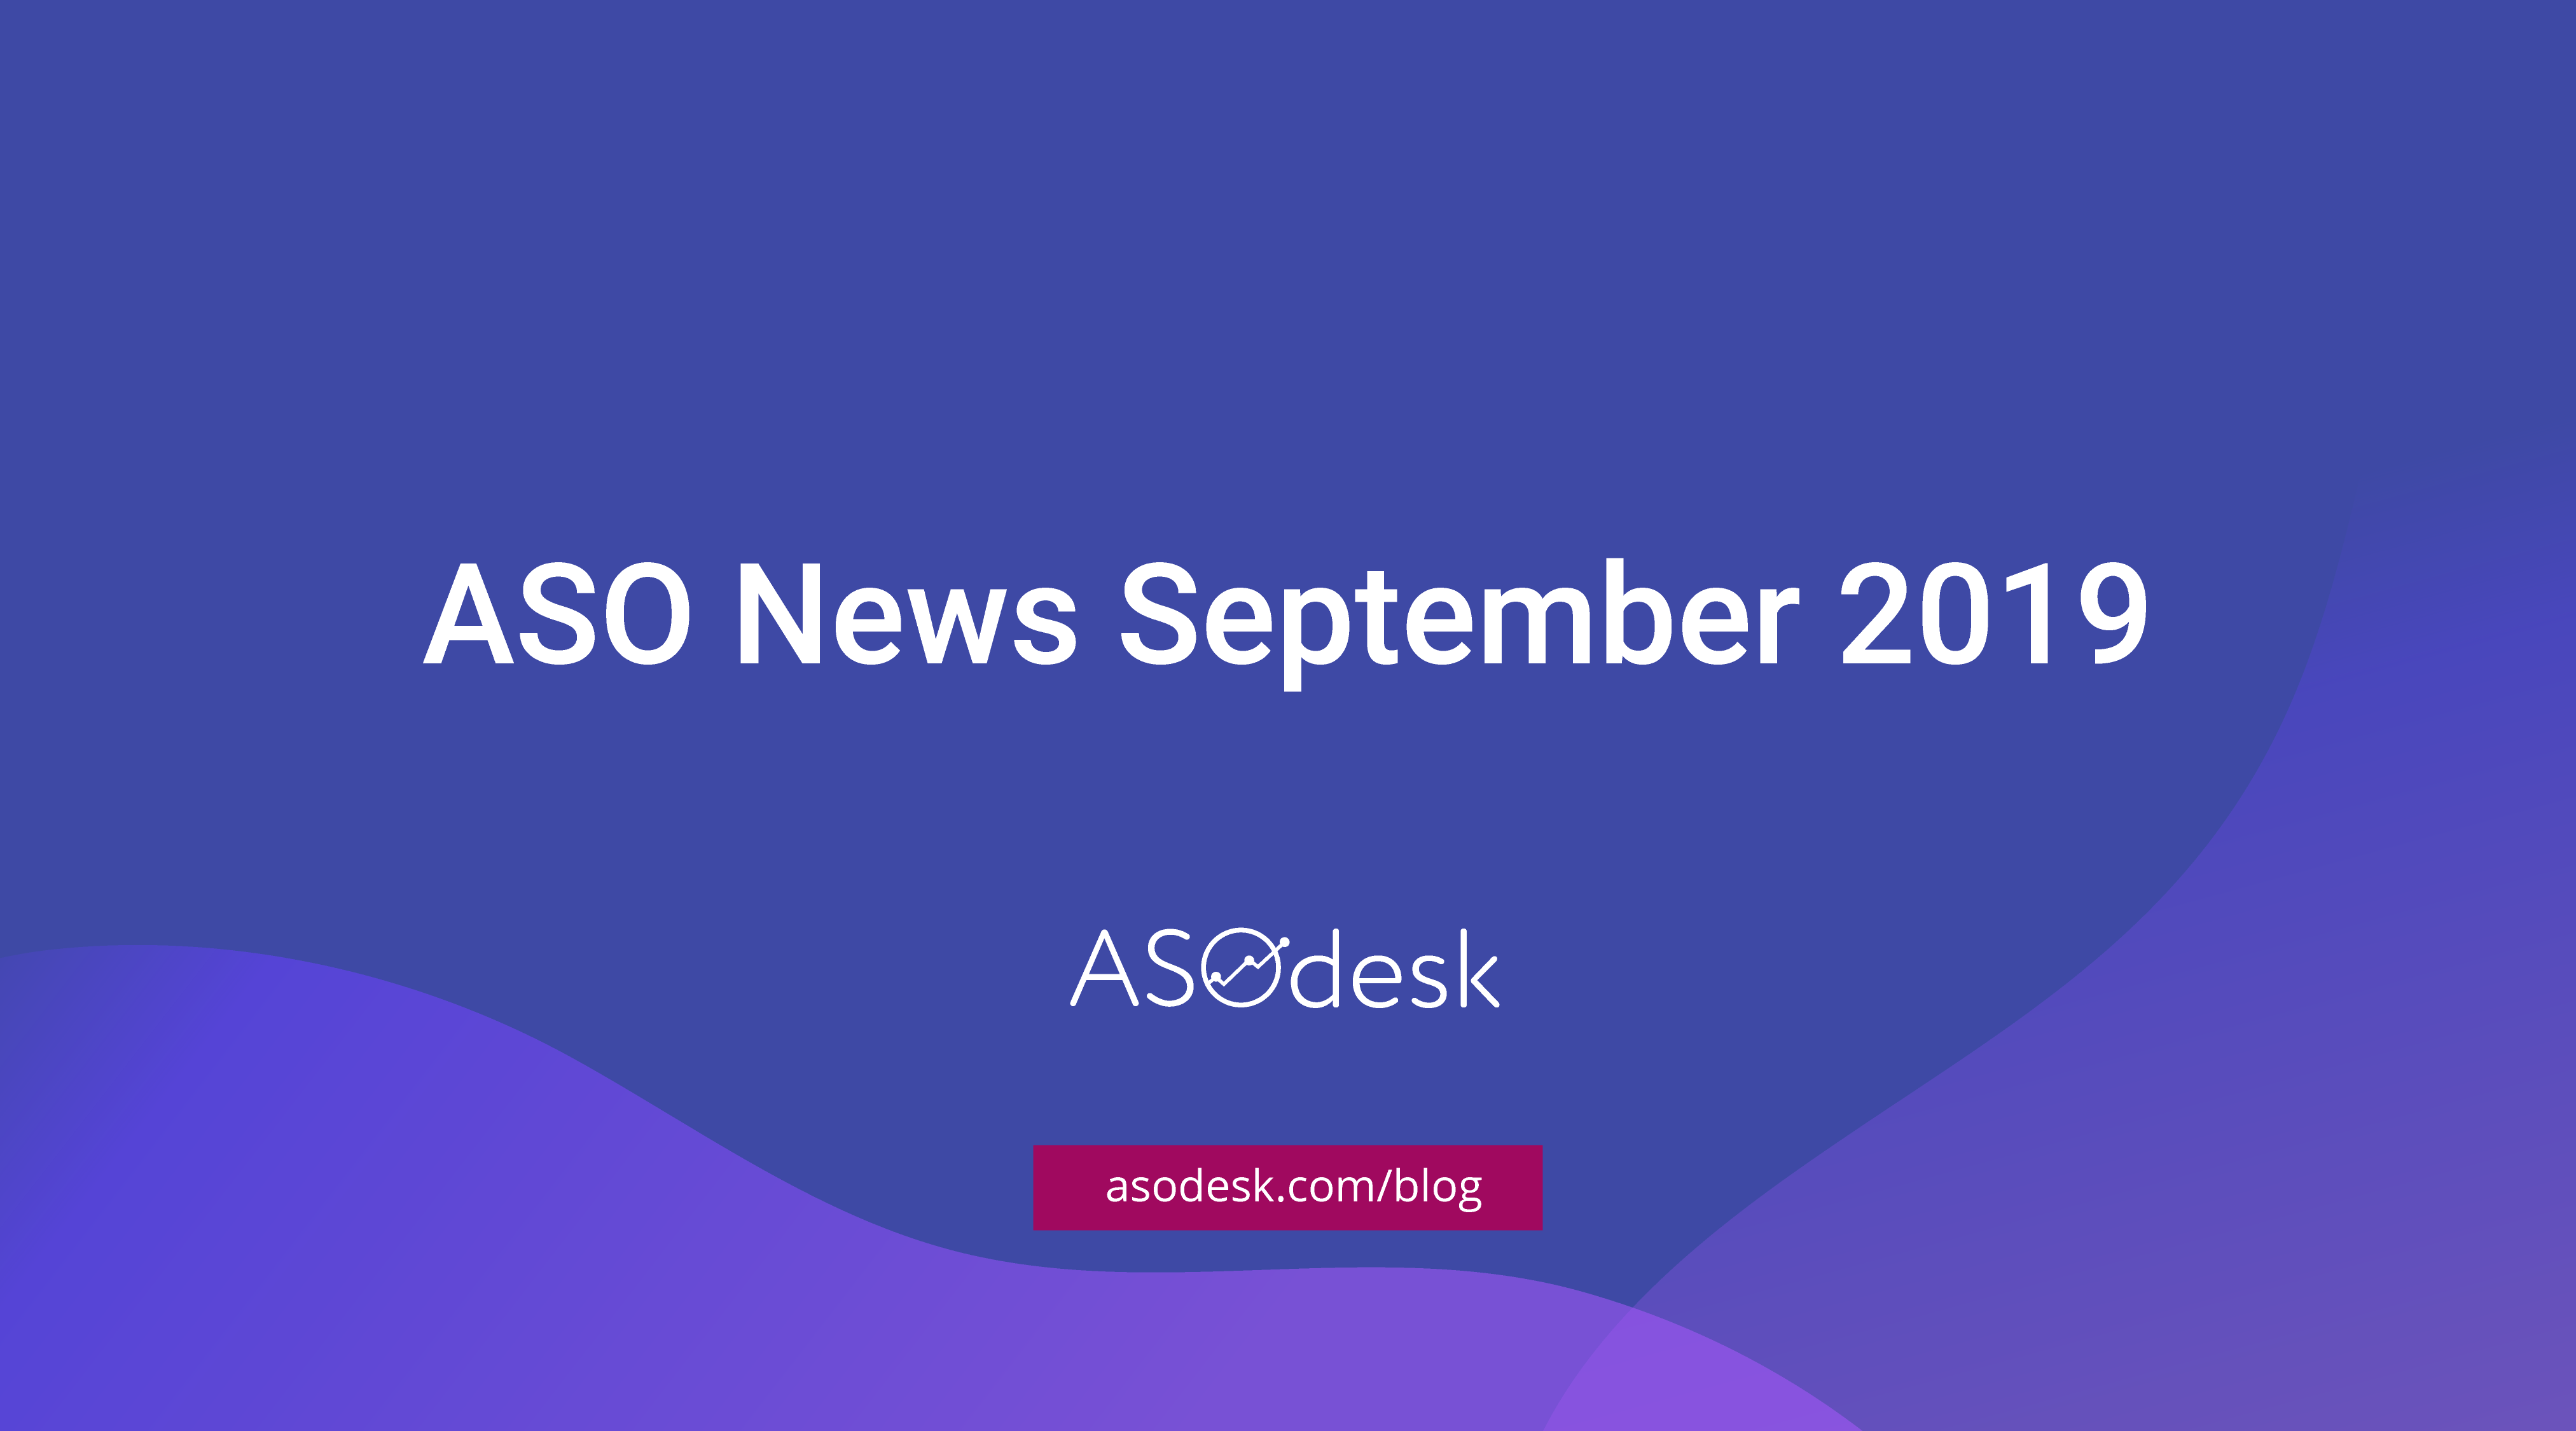 ASO News September